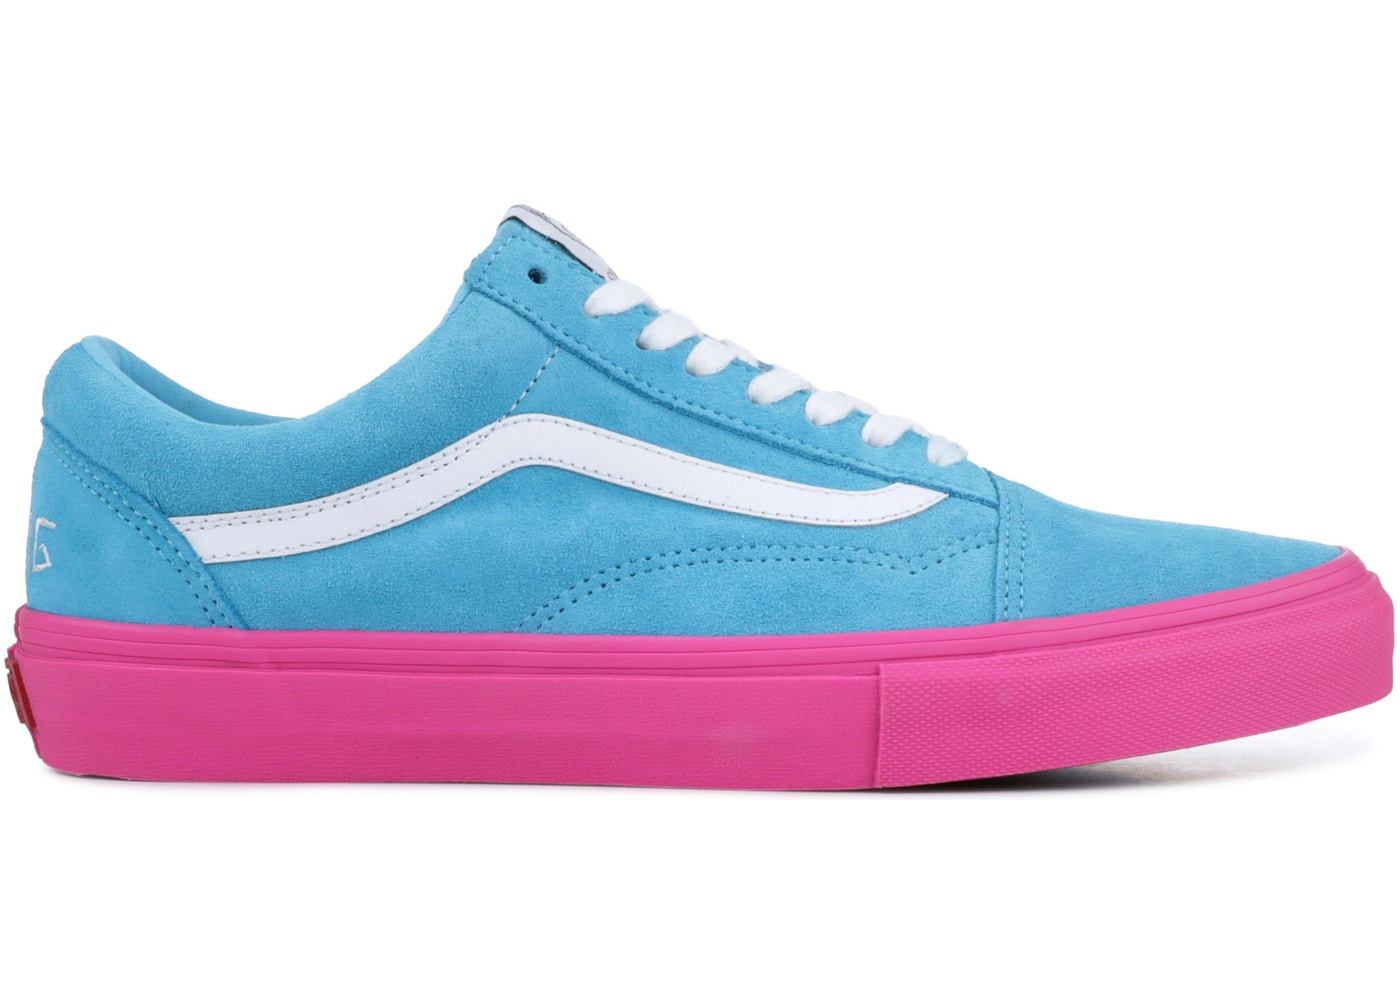 41dfd05a946f Vans Old Skool Pro S Golf Wang Blue Pink - VN0QHMF5E